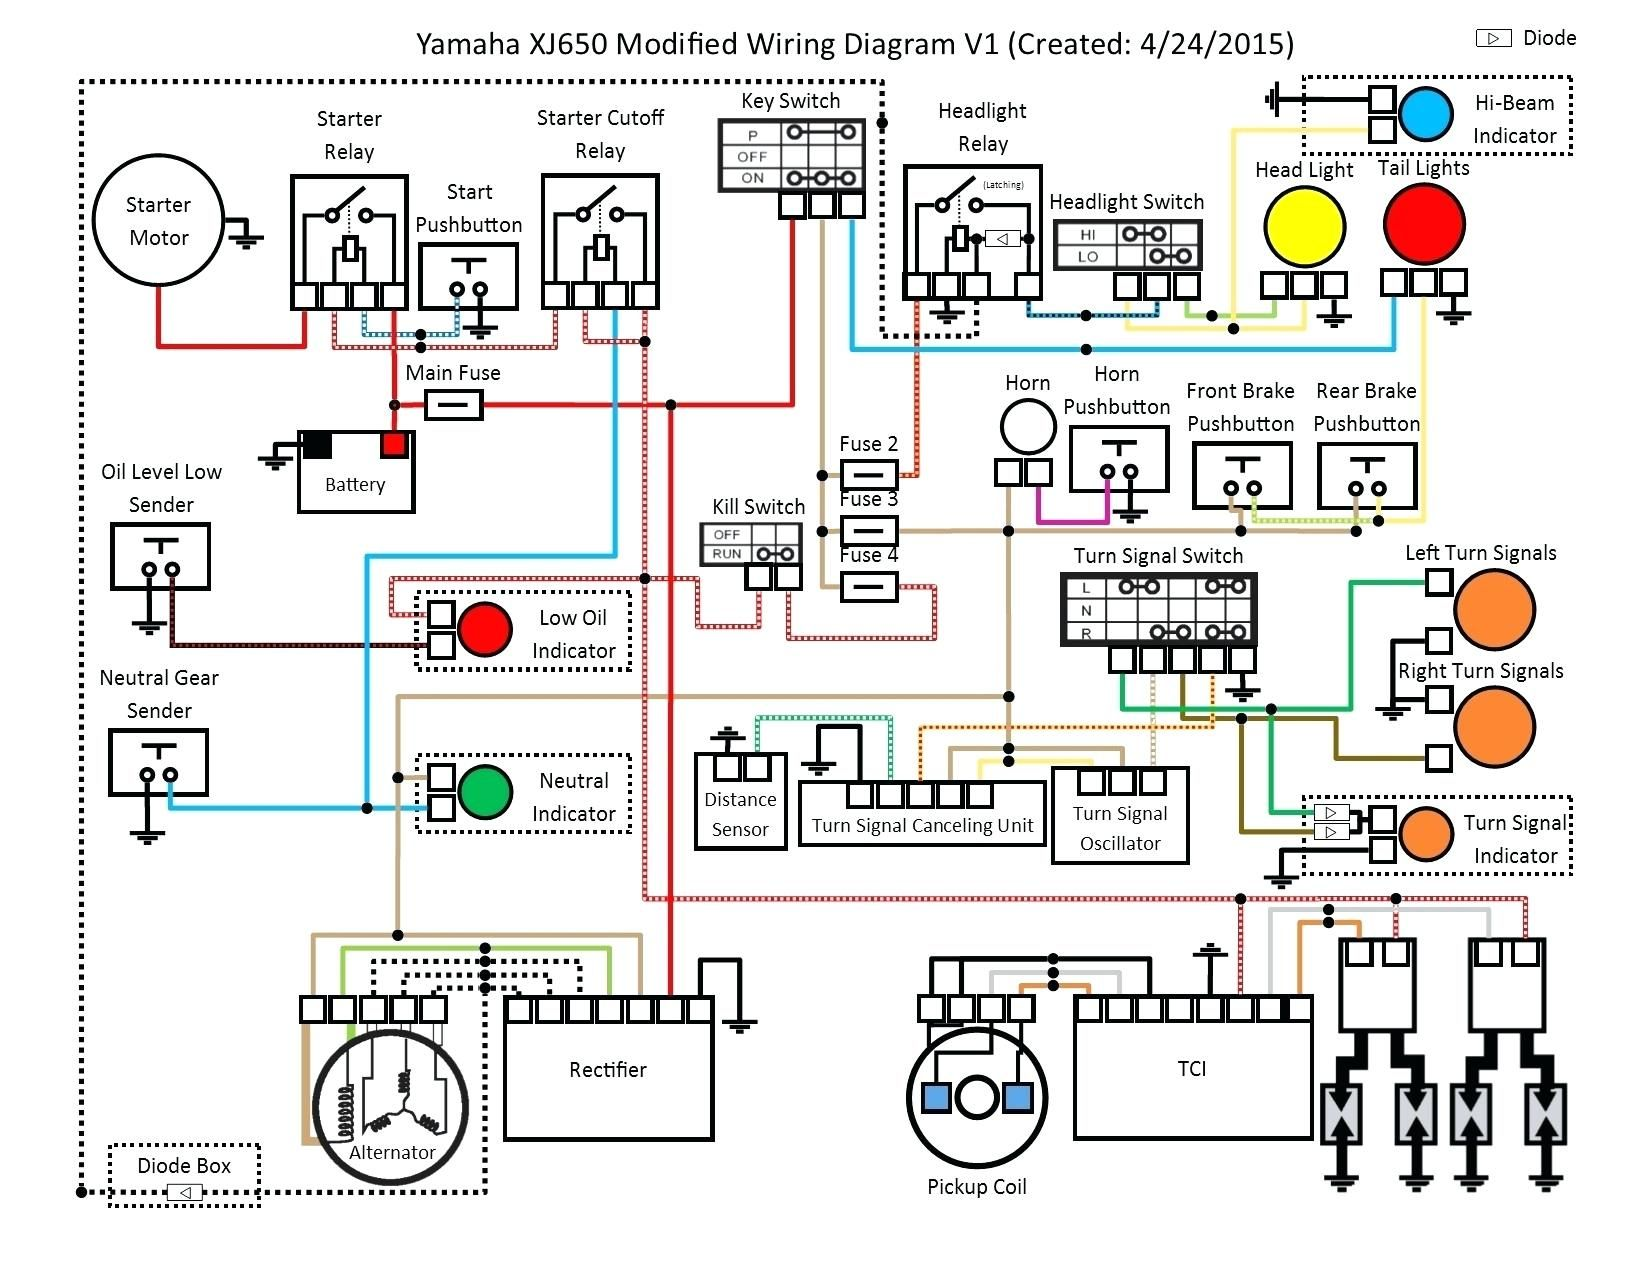 medium resolution of xrm headlight wiring diagram wiring diagram blog xrm headlight wiring diagram source honda xrm motorcycle